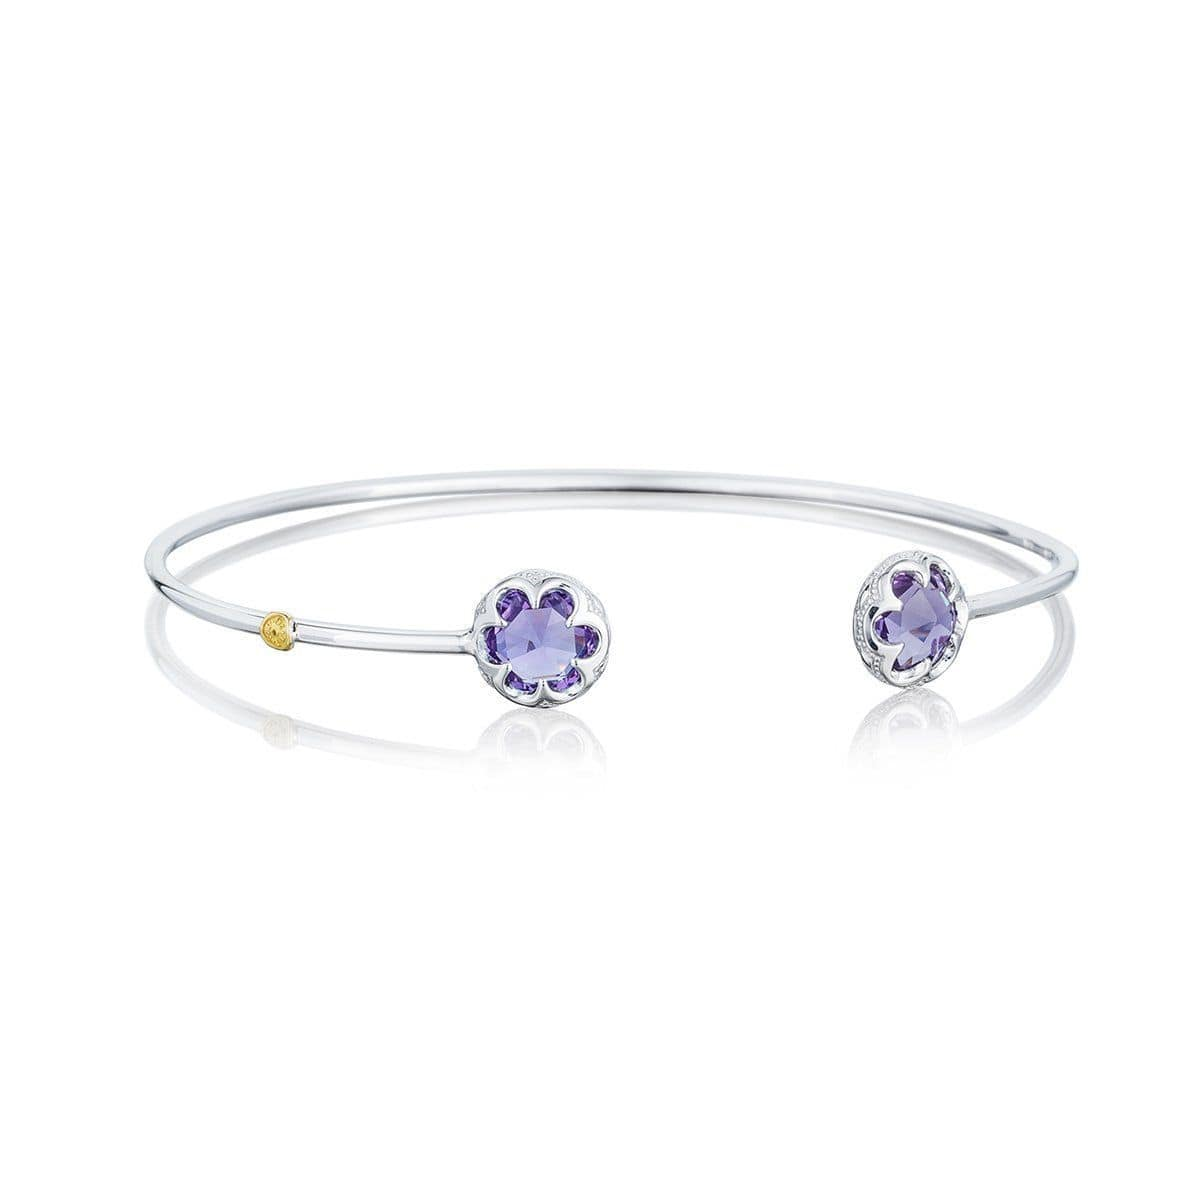 Silver 7mm Round Amethyst Bangle - SB20101-Tacori-Renee Taylor Gallery